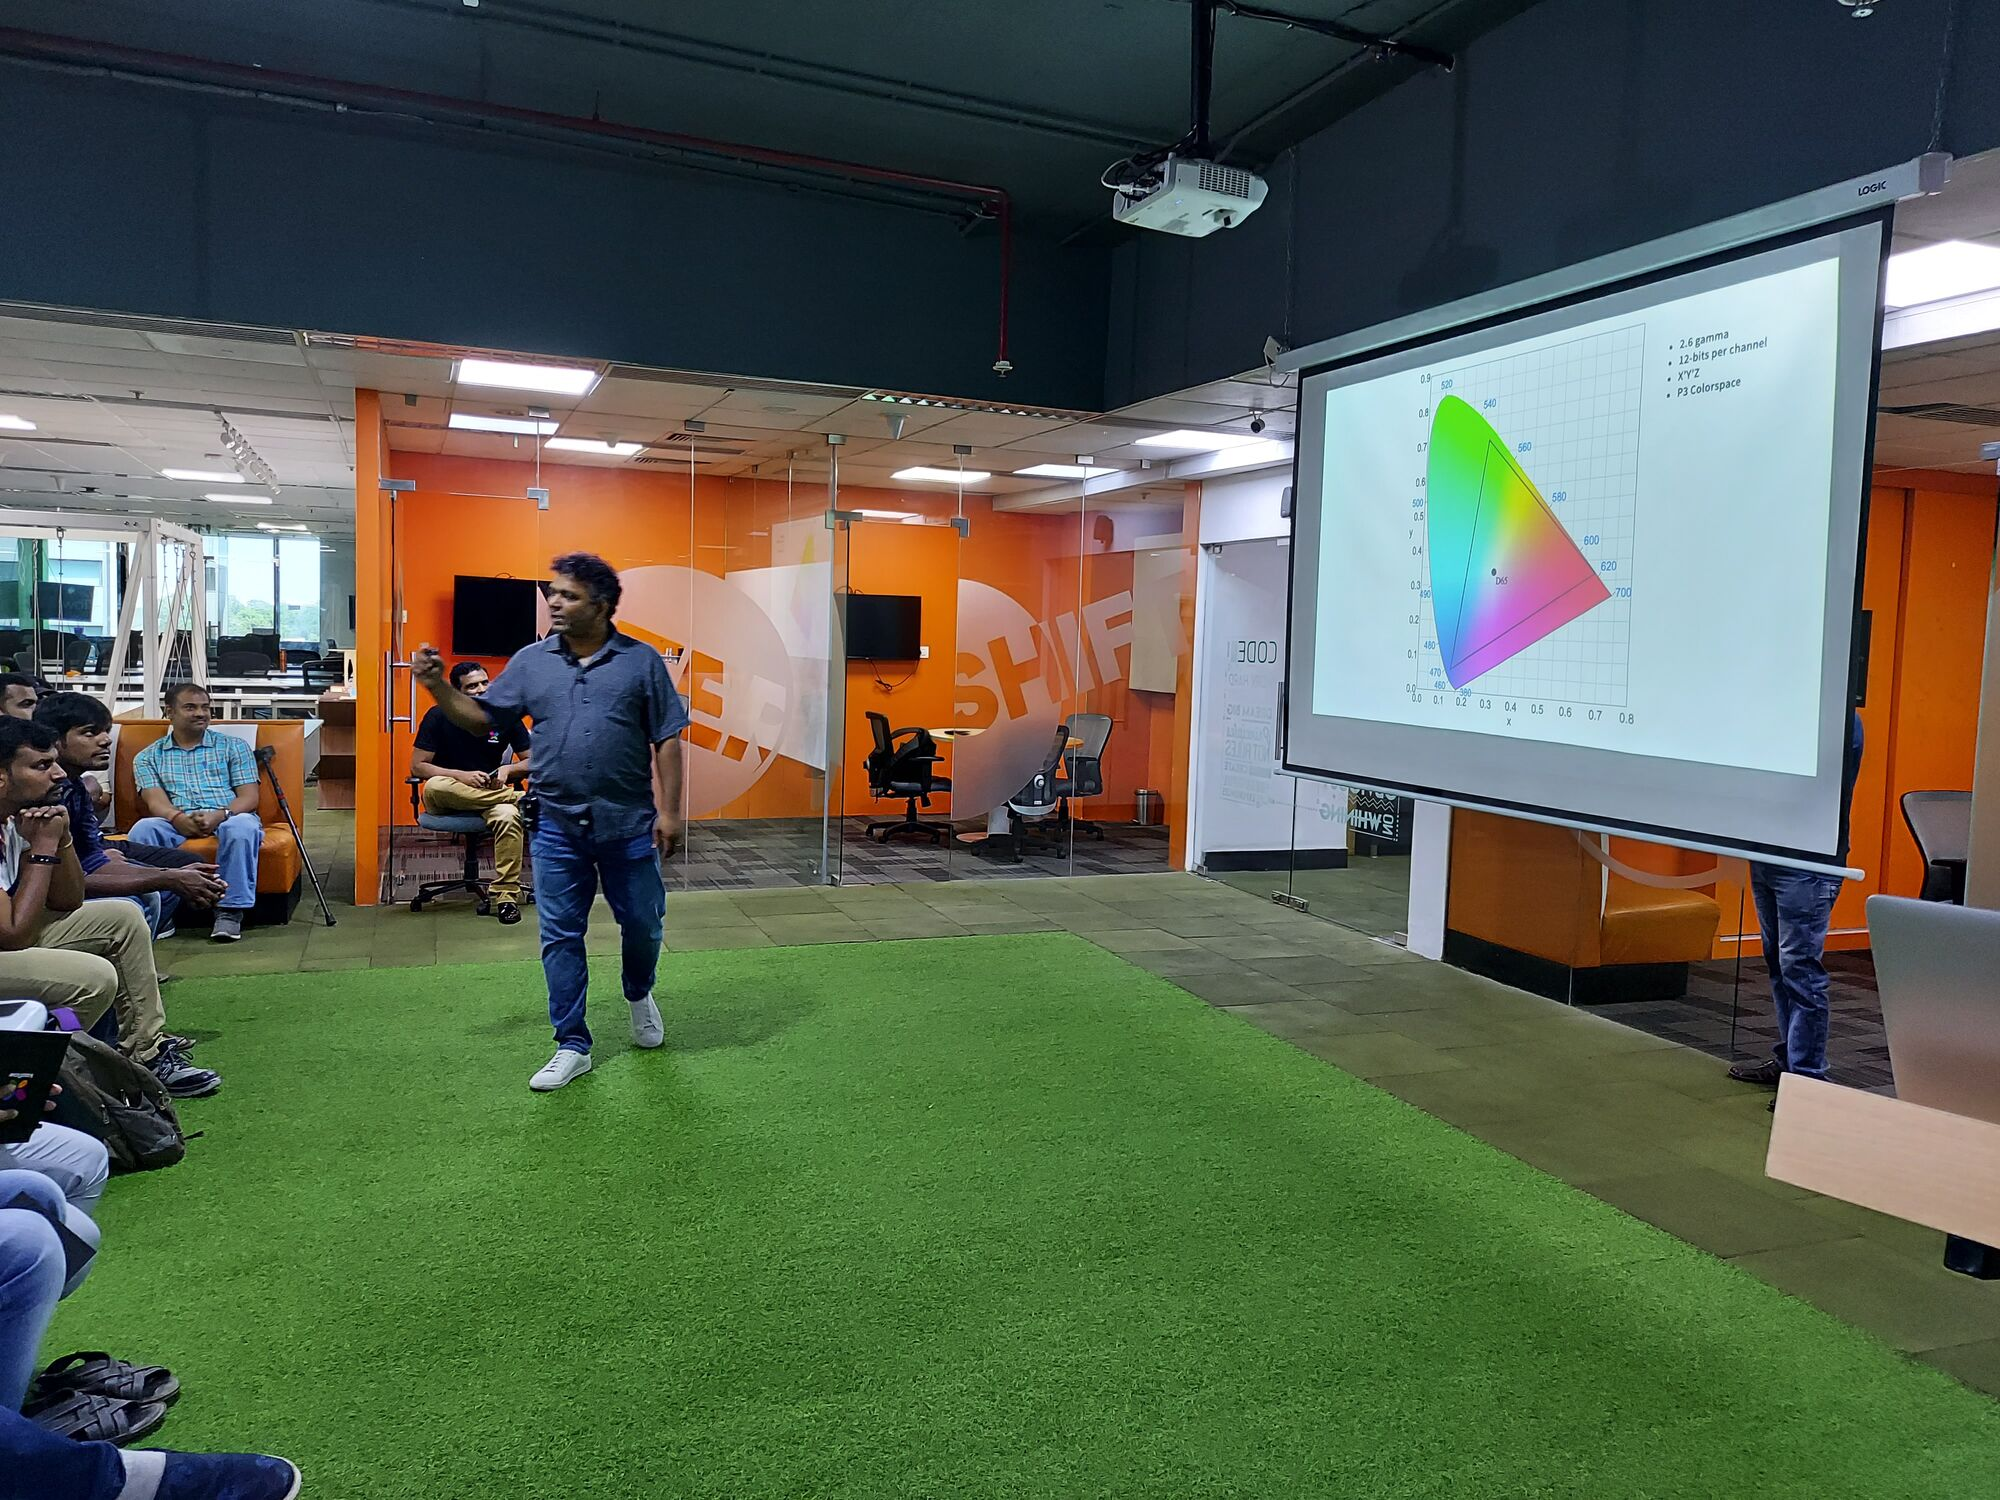 Rajesh of Qube explaining the Color triangle